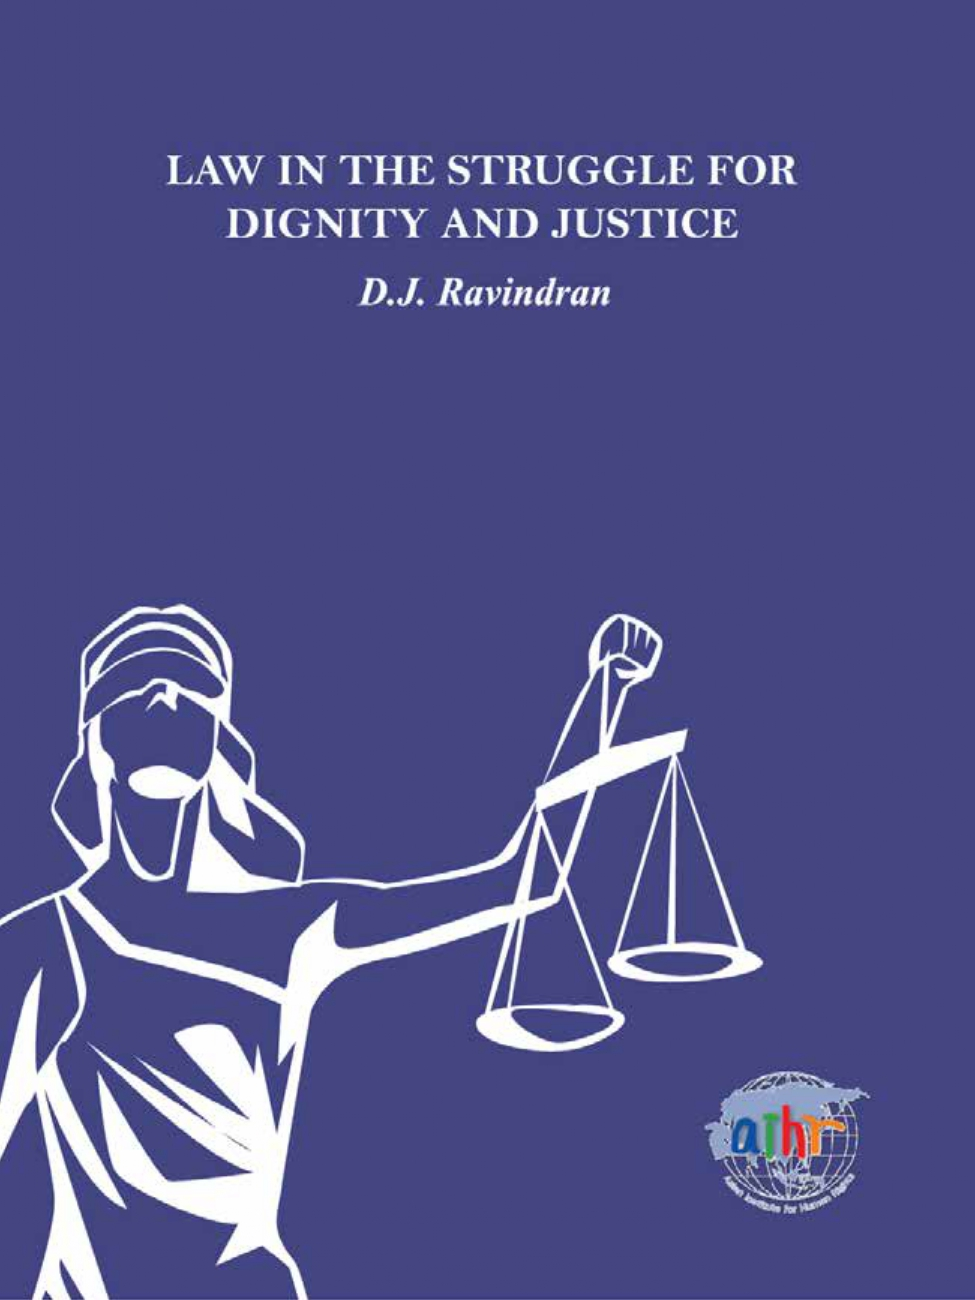 Law in Struggle for Dignity and Justice